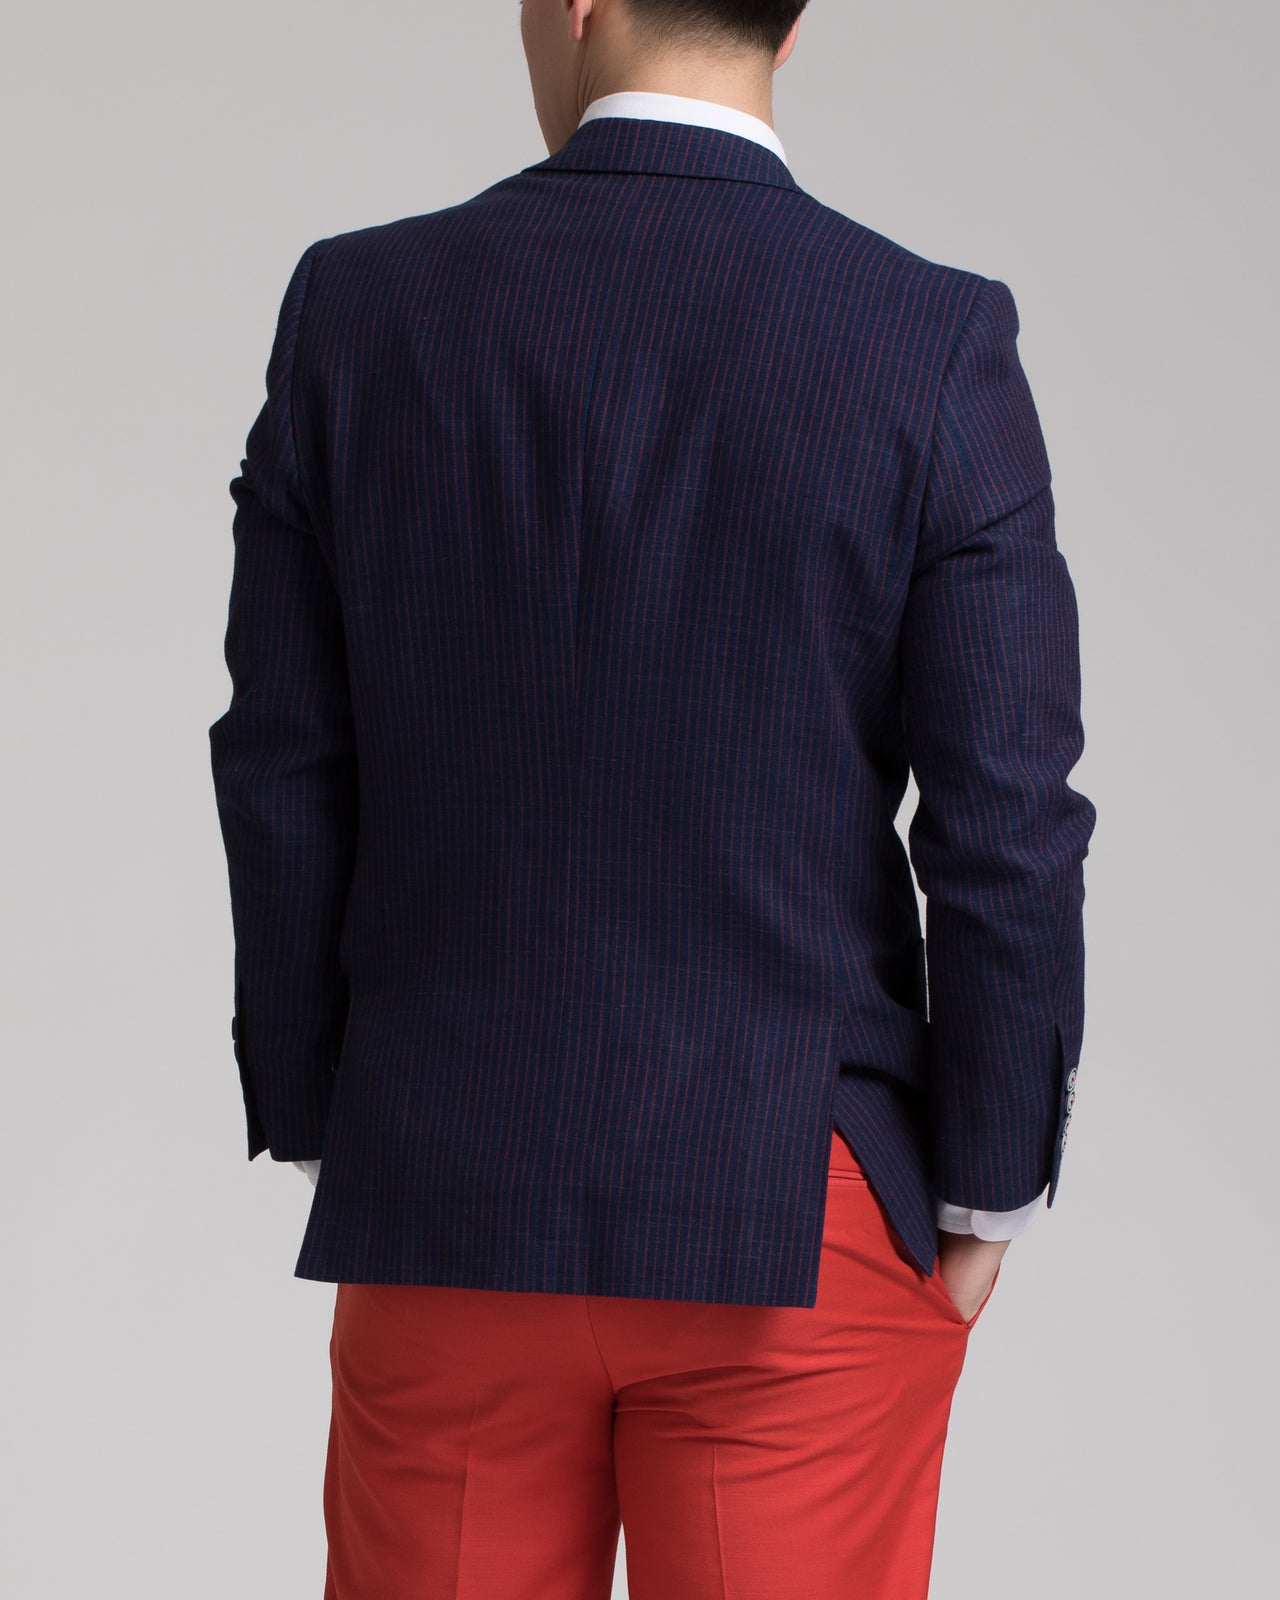 Dover Notch Jacket - Color: Navy & Red Stripe | Blue